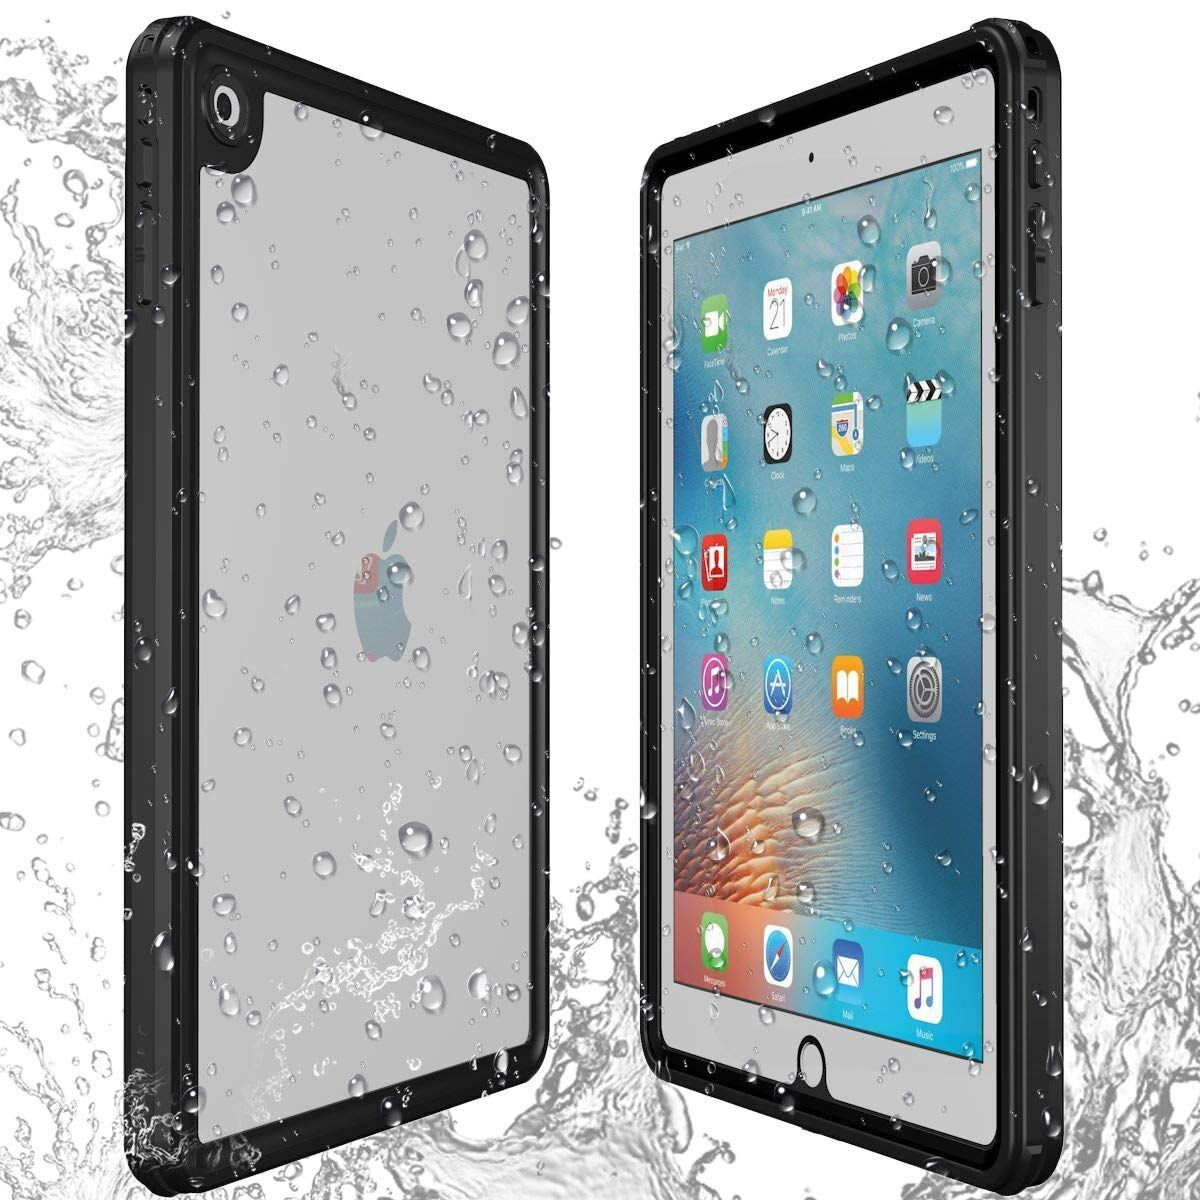 competitive price 78591 9d08e AICase iPad 9.7 inch 2017/2018 Waterproof Case, IP68 Waterproof 360 Degree  All Round Protective Ultra Slim Thin Dust/Snow Proof with Lanyard ...